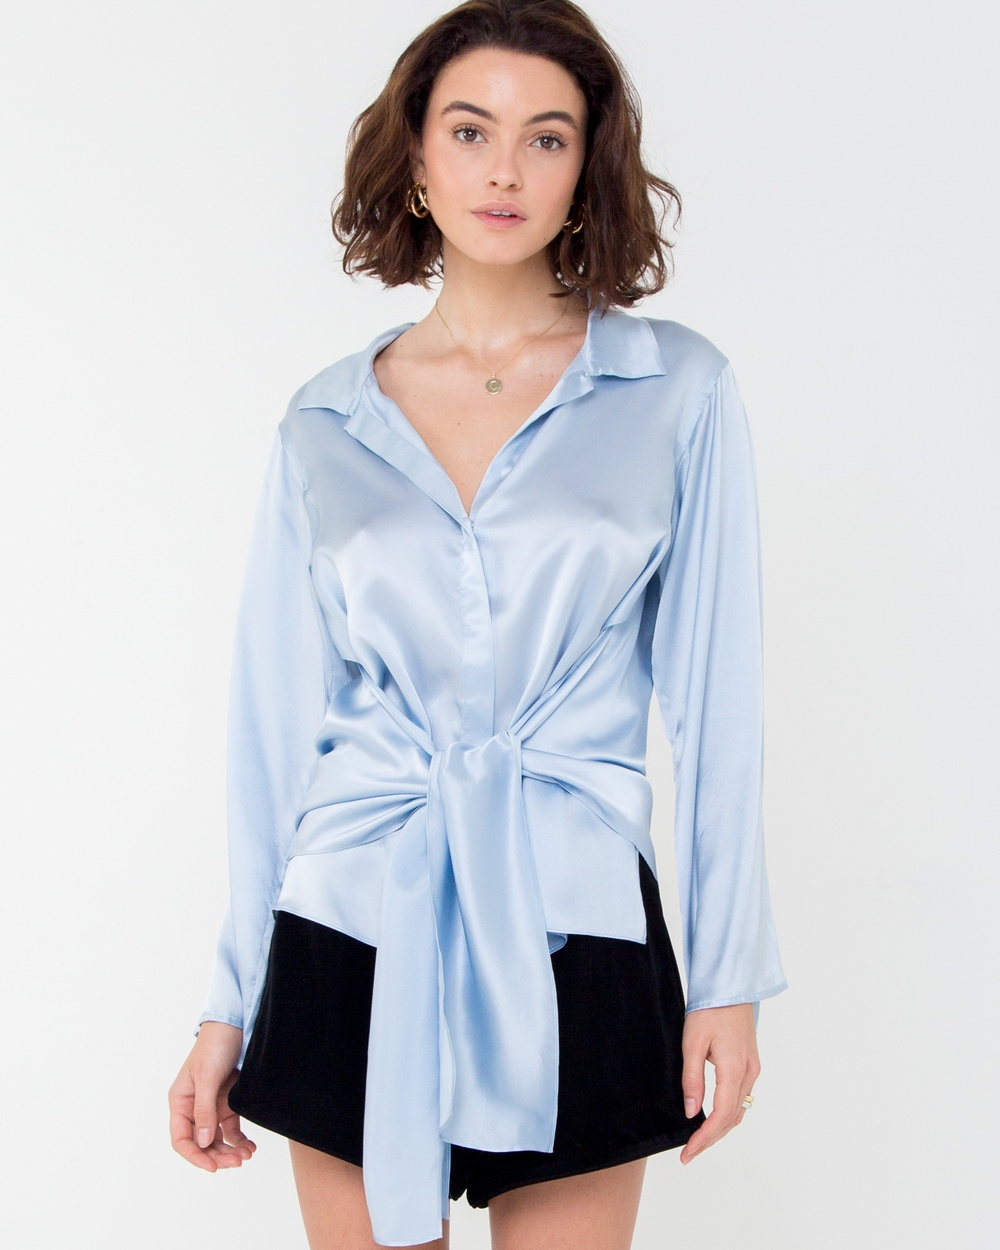 Carver Elle Shirt Tops Blue Elle Shirt